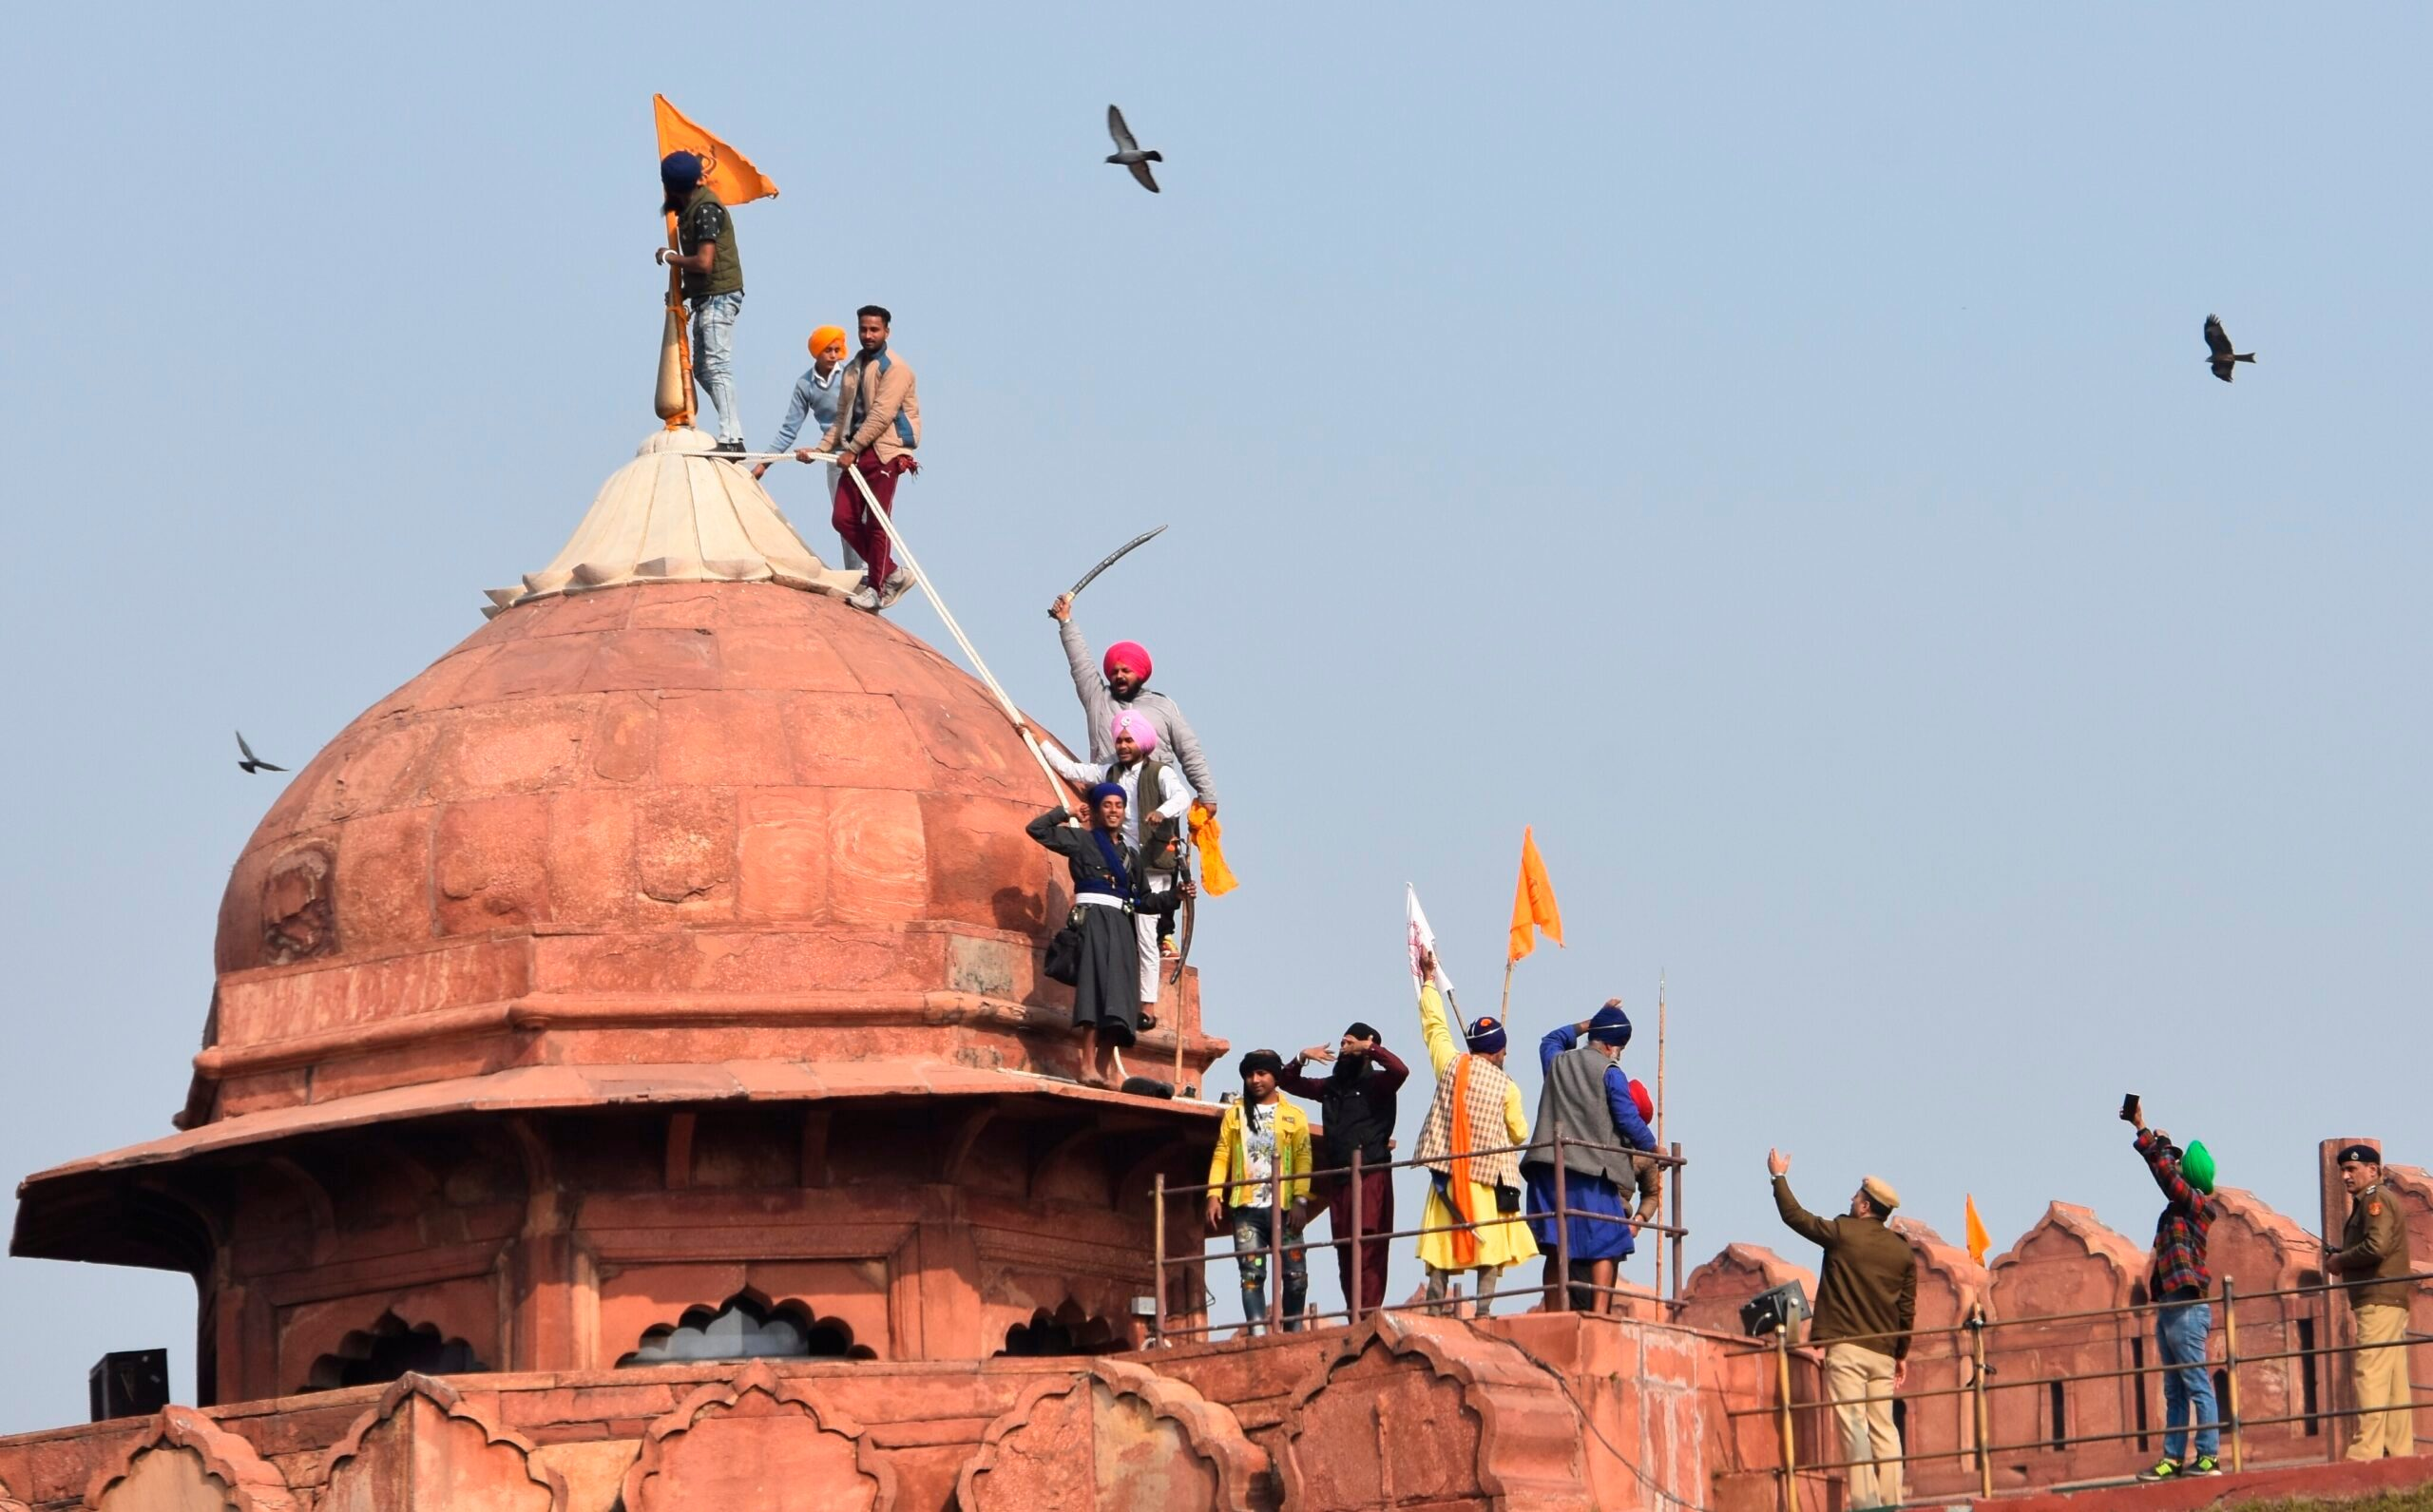 Angry Farmers Storm India's Red Fort in Huge Tractor Rally - snopes